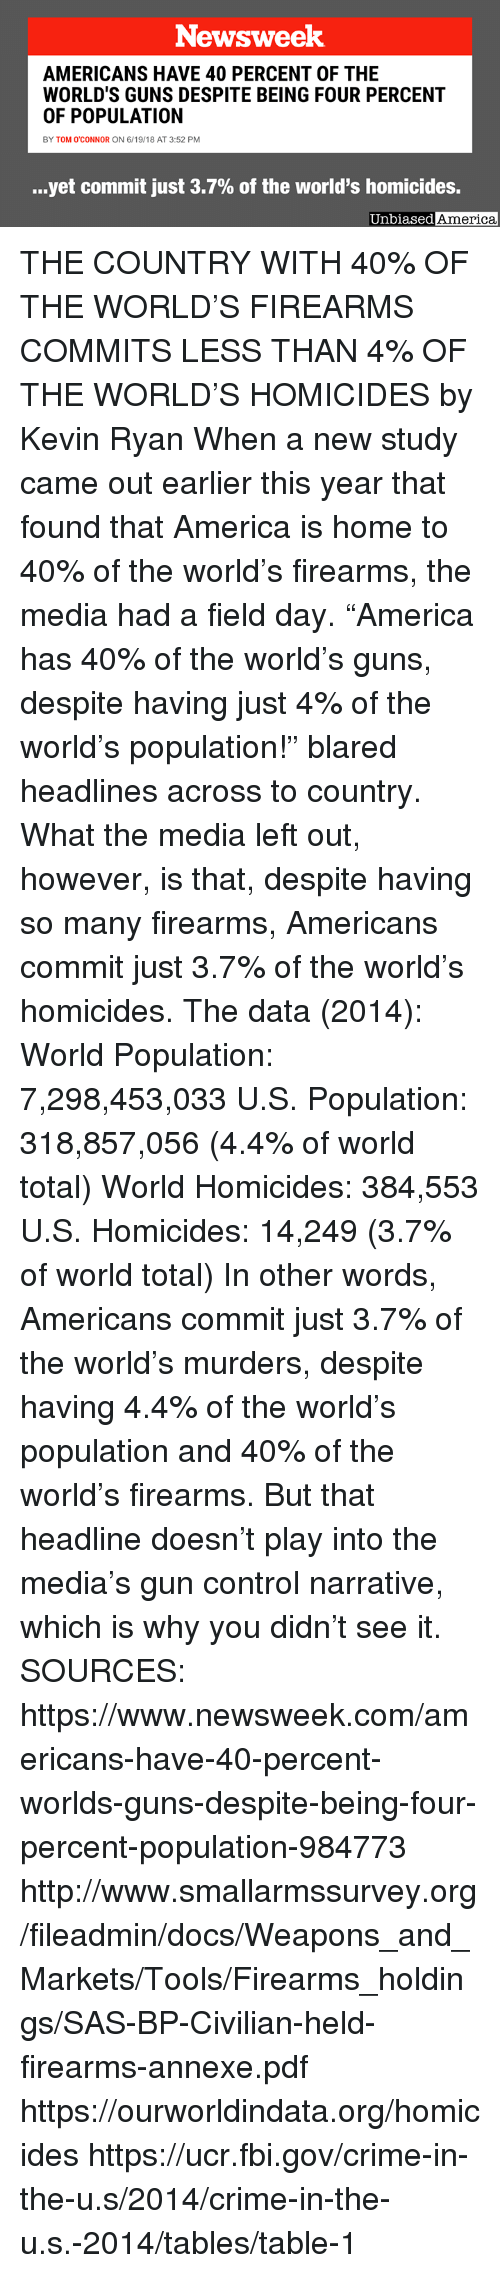 """America, Crime, and Fbi: Newsweek  AMERICANS HAVE 40 PERCENT OF THE  WORLD'S GUNS DESPITE BEING FOUR PERCENT  OF POPULATION  BY TOM O'CONNOR ON 6/19/18 AT 3:52 PM  yet commit just 3.7% of the world's homicides.  Unbiased  America THE COUNTRY WITH 40% OF THE WORLD'S FIREARMS COMMITS LESS THAN 4% OF THE WORLD'S HOMICIDES by Kevin Ryan  When a new study came out earlier this year that found that America is home to 40% of the world's firearms, the media had a field day.  """"America has 40% of the world's guns, despite having just 4% of the world's population!"""" blared headlines across to country.  What the media left out, however, is that, despite having so many firearms, Americans commit just 3.7% of the world's homicides.  The data (2014):  World Population:  7,298,453,033 U.S. Population:  318,857,056 (4.4% of world total)  World Homicides: 384,553  U.S. Homicides: 14,249 (3.7% of world total)  In other words, Americans commit just 3.7% of the world's murders, despite having 4.4% of the world's population and 40% of the world's firearms.  But that headline doesn't play into the media's gun control narrative, which is why you didn't see it.   SOURCES: https://www.newsweek.com/americans-have-40-percent-worlds-guns-despite-being-four-percent-population-984773 http://www.smallarmssurvey.org/fileadmin/docs/Weapons_and_Markets/Tools/Firearms_holdings/SAS-BP-Civilian-held-firearms-annexe.pdf https://ourworldindata.org/homicides https://ucr.fbi.gov/crime-in-the-u.s/2014/crime-in-the-u.s.-2014/tables/table-1"""